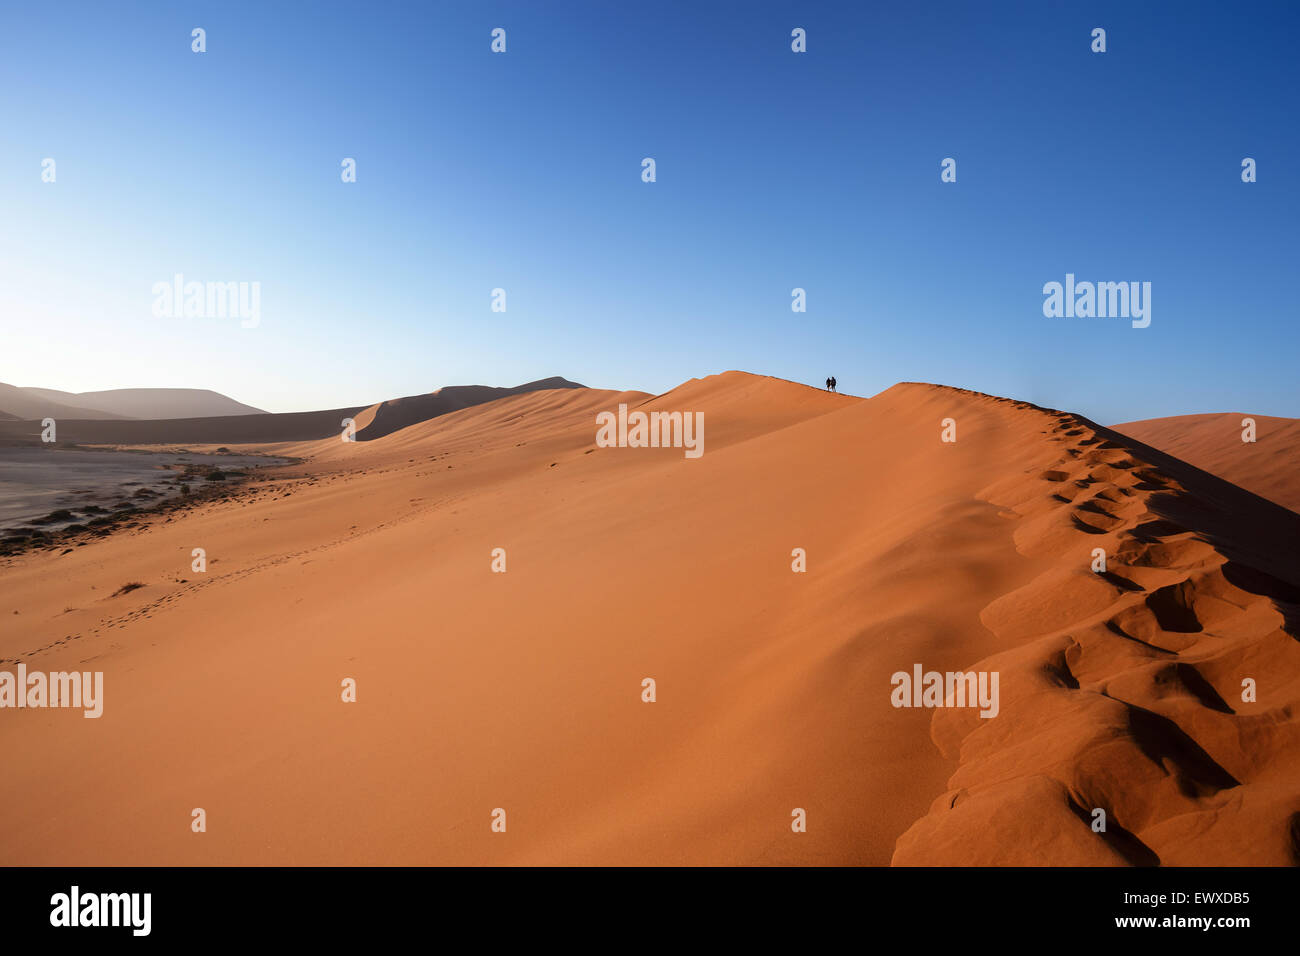 dune in Dead Vlei in Namib desert, best place of Namibia - Stock Image